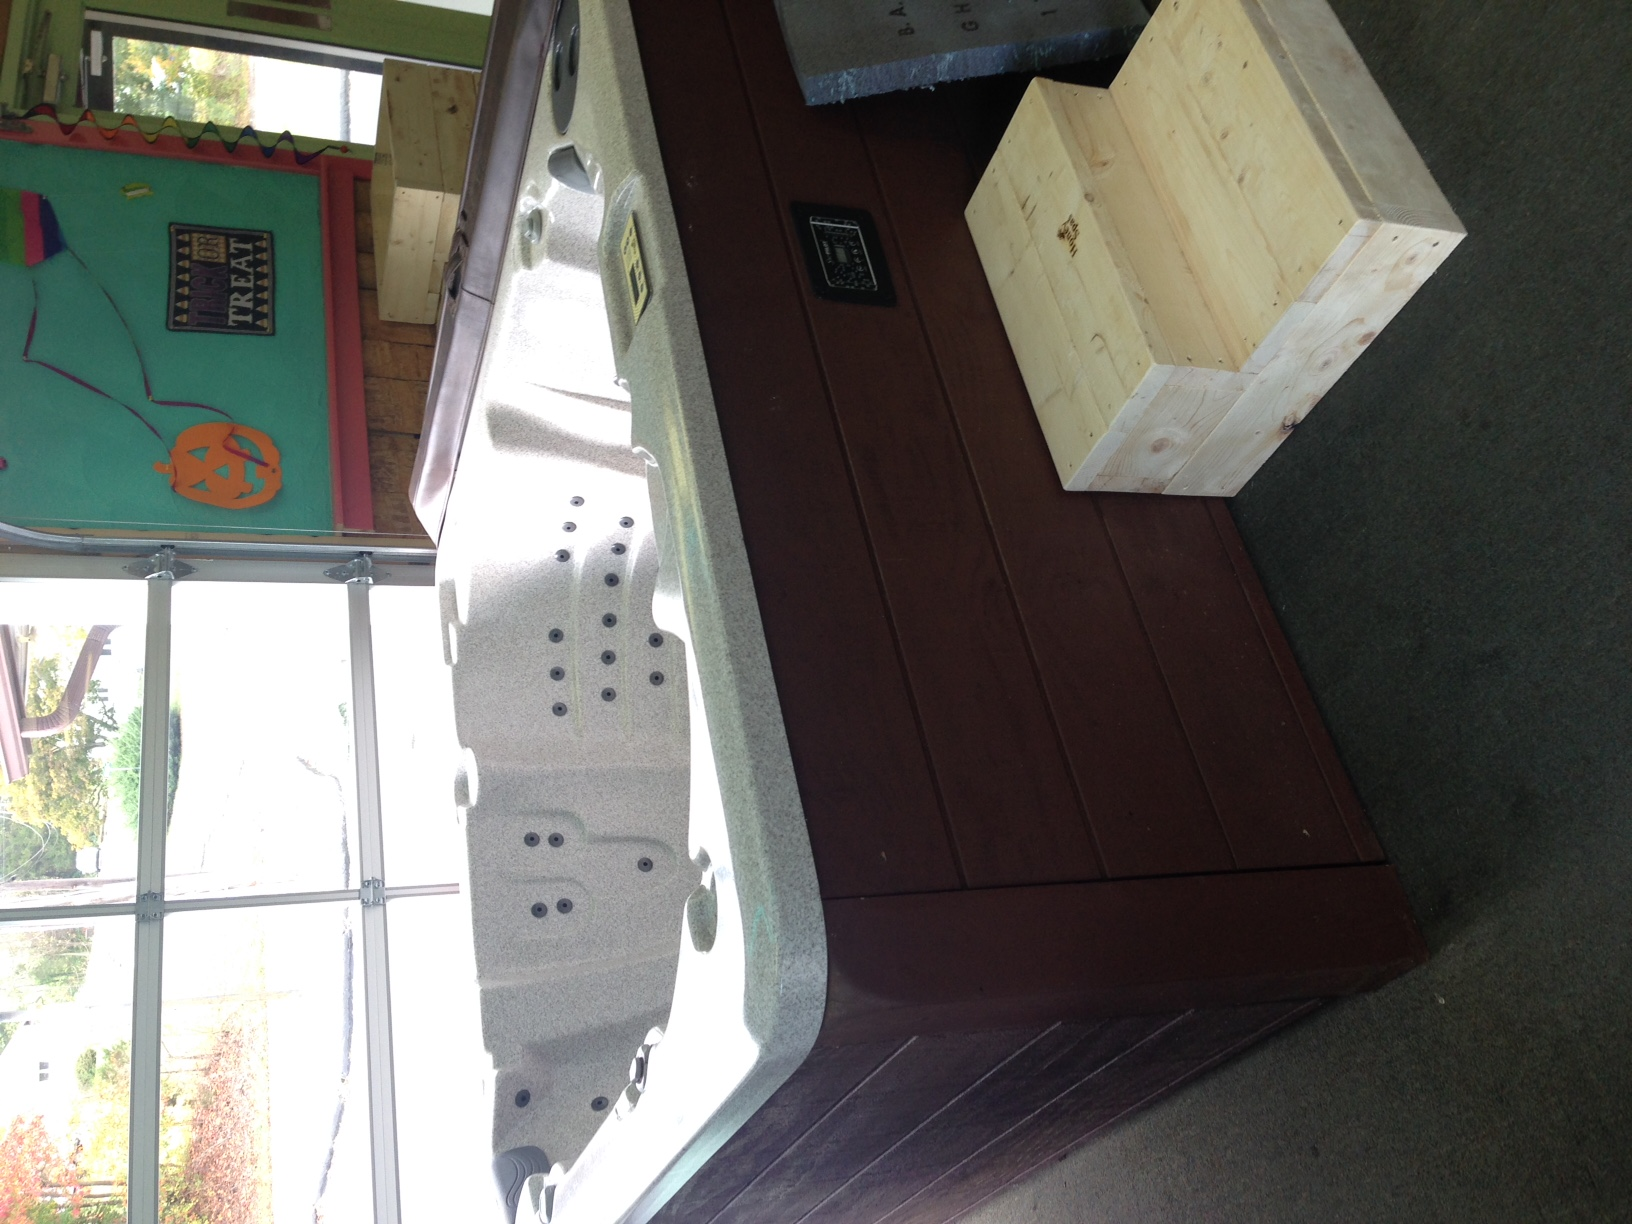 Reconditioned Honey Spas brand series 600 level A